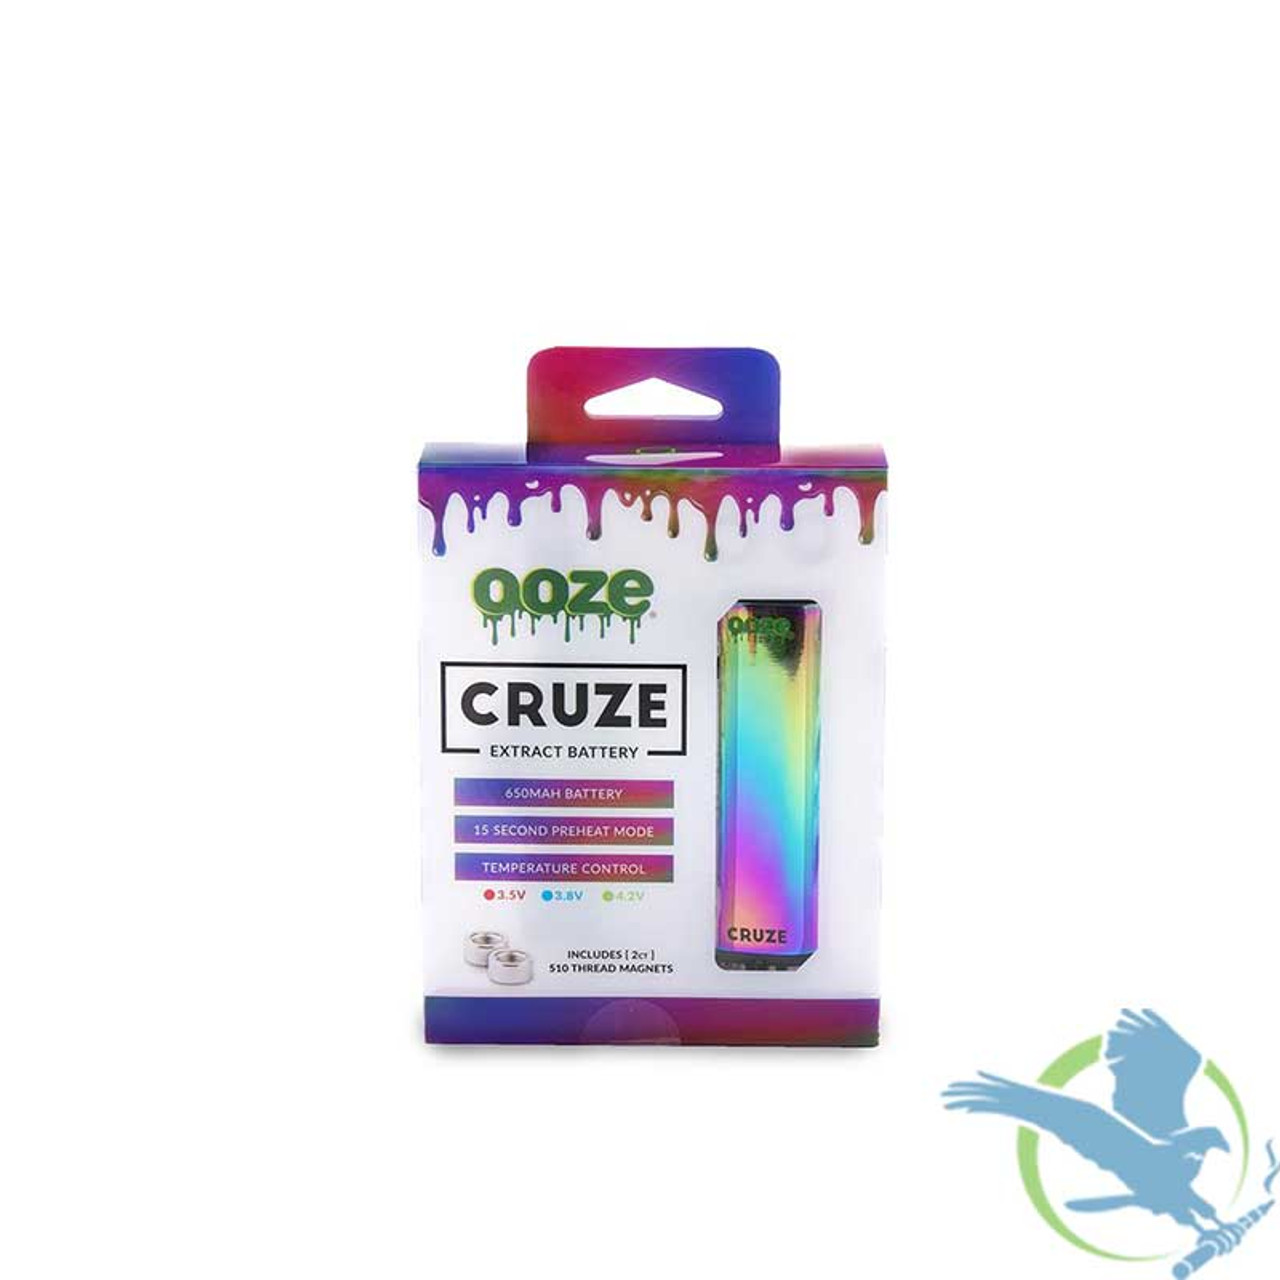 Ooze Cruze Variable Voltage Extract Battery Vaporizer Mod (MSRP $24 99)